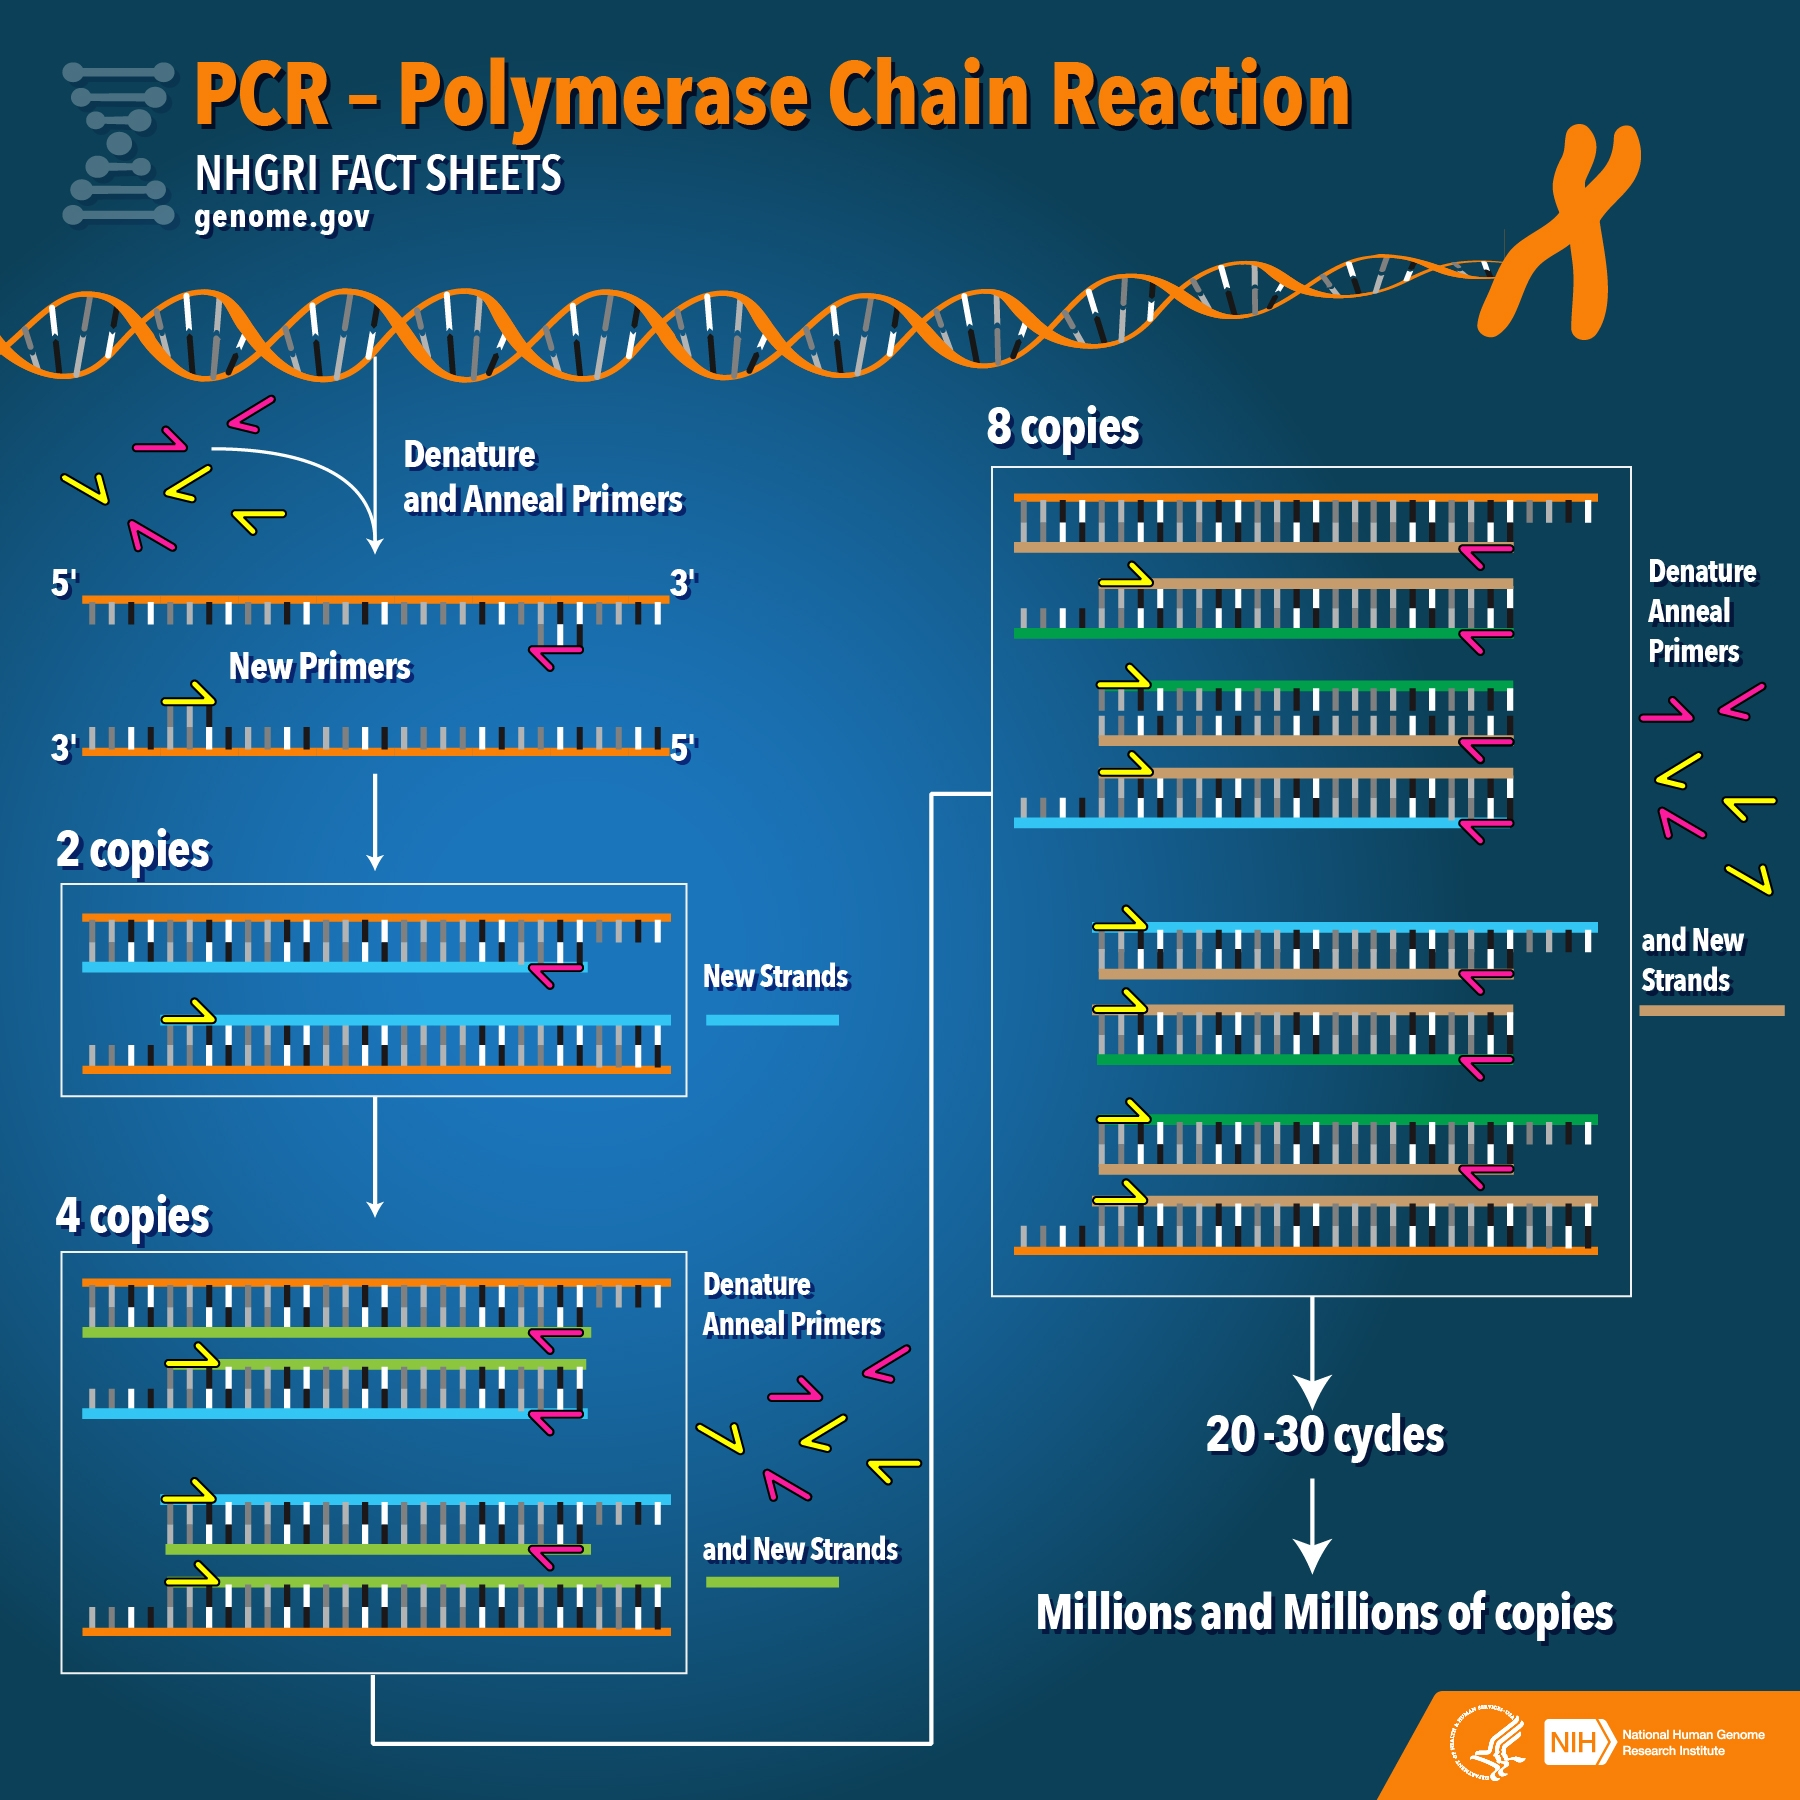 General schematic of PCR